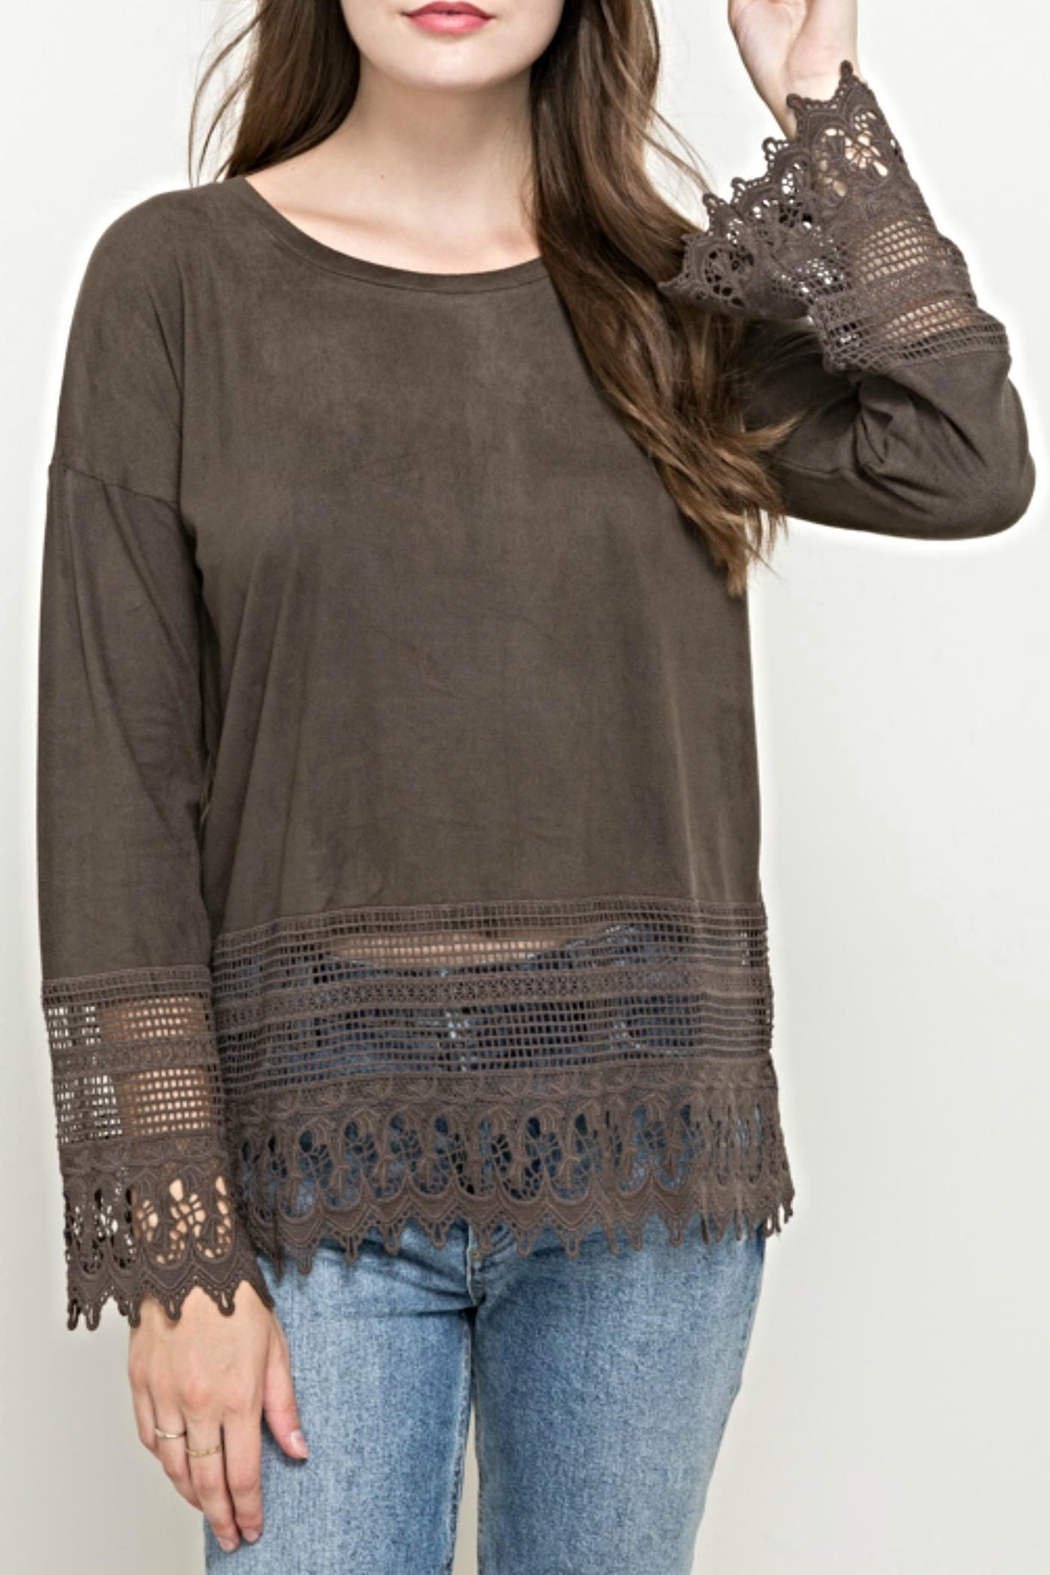 Hem & Thread Suede Lace Top - Main Image